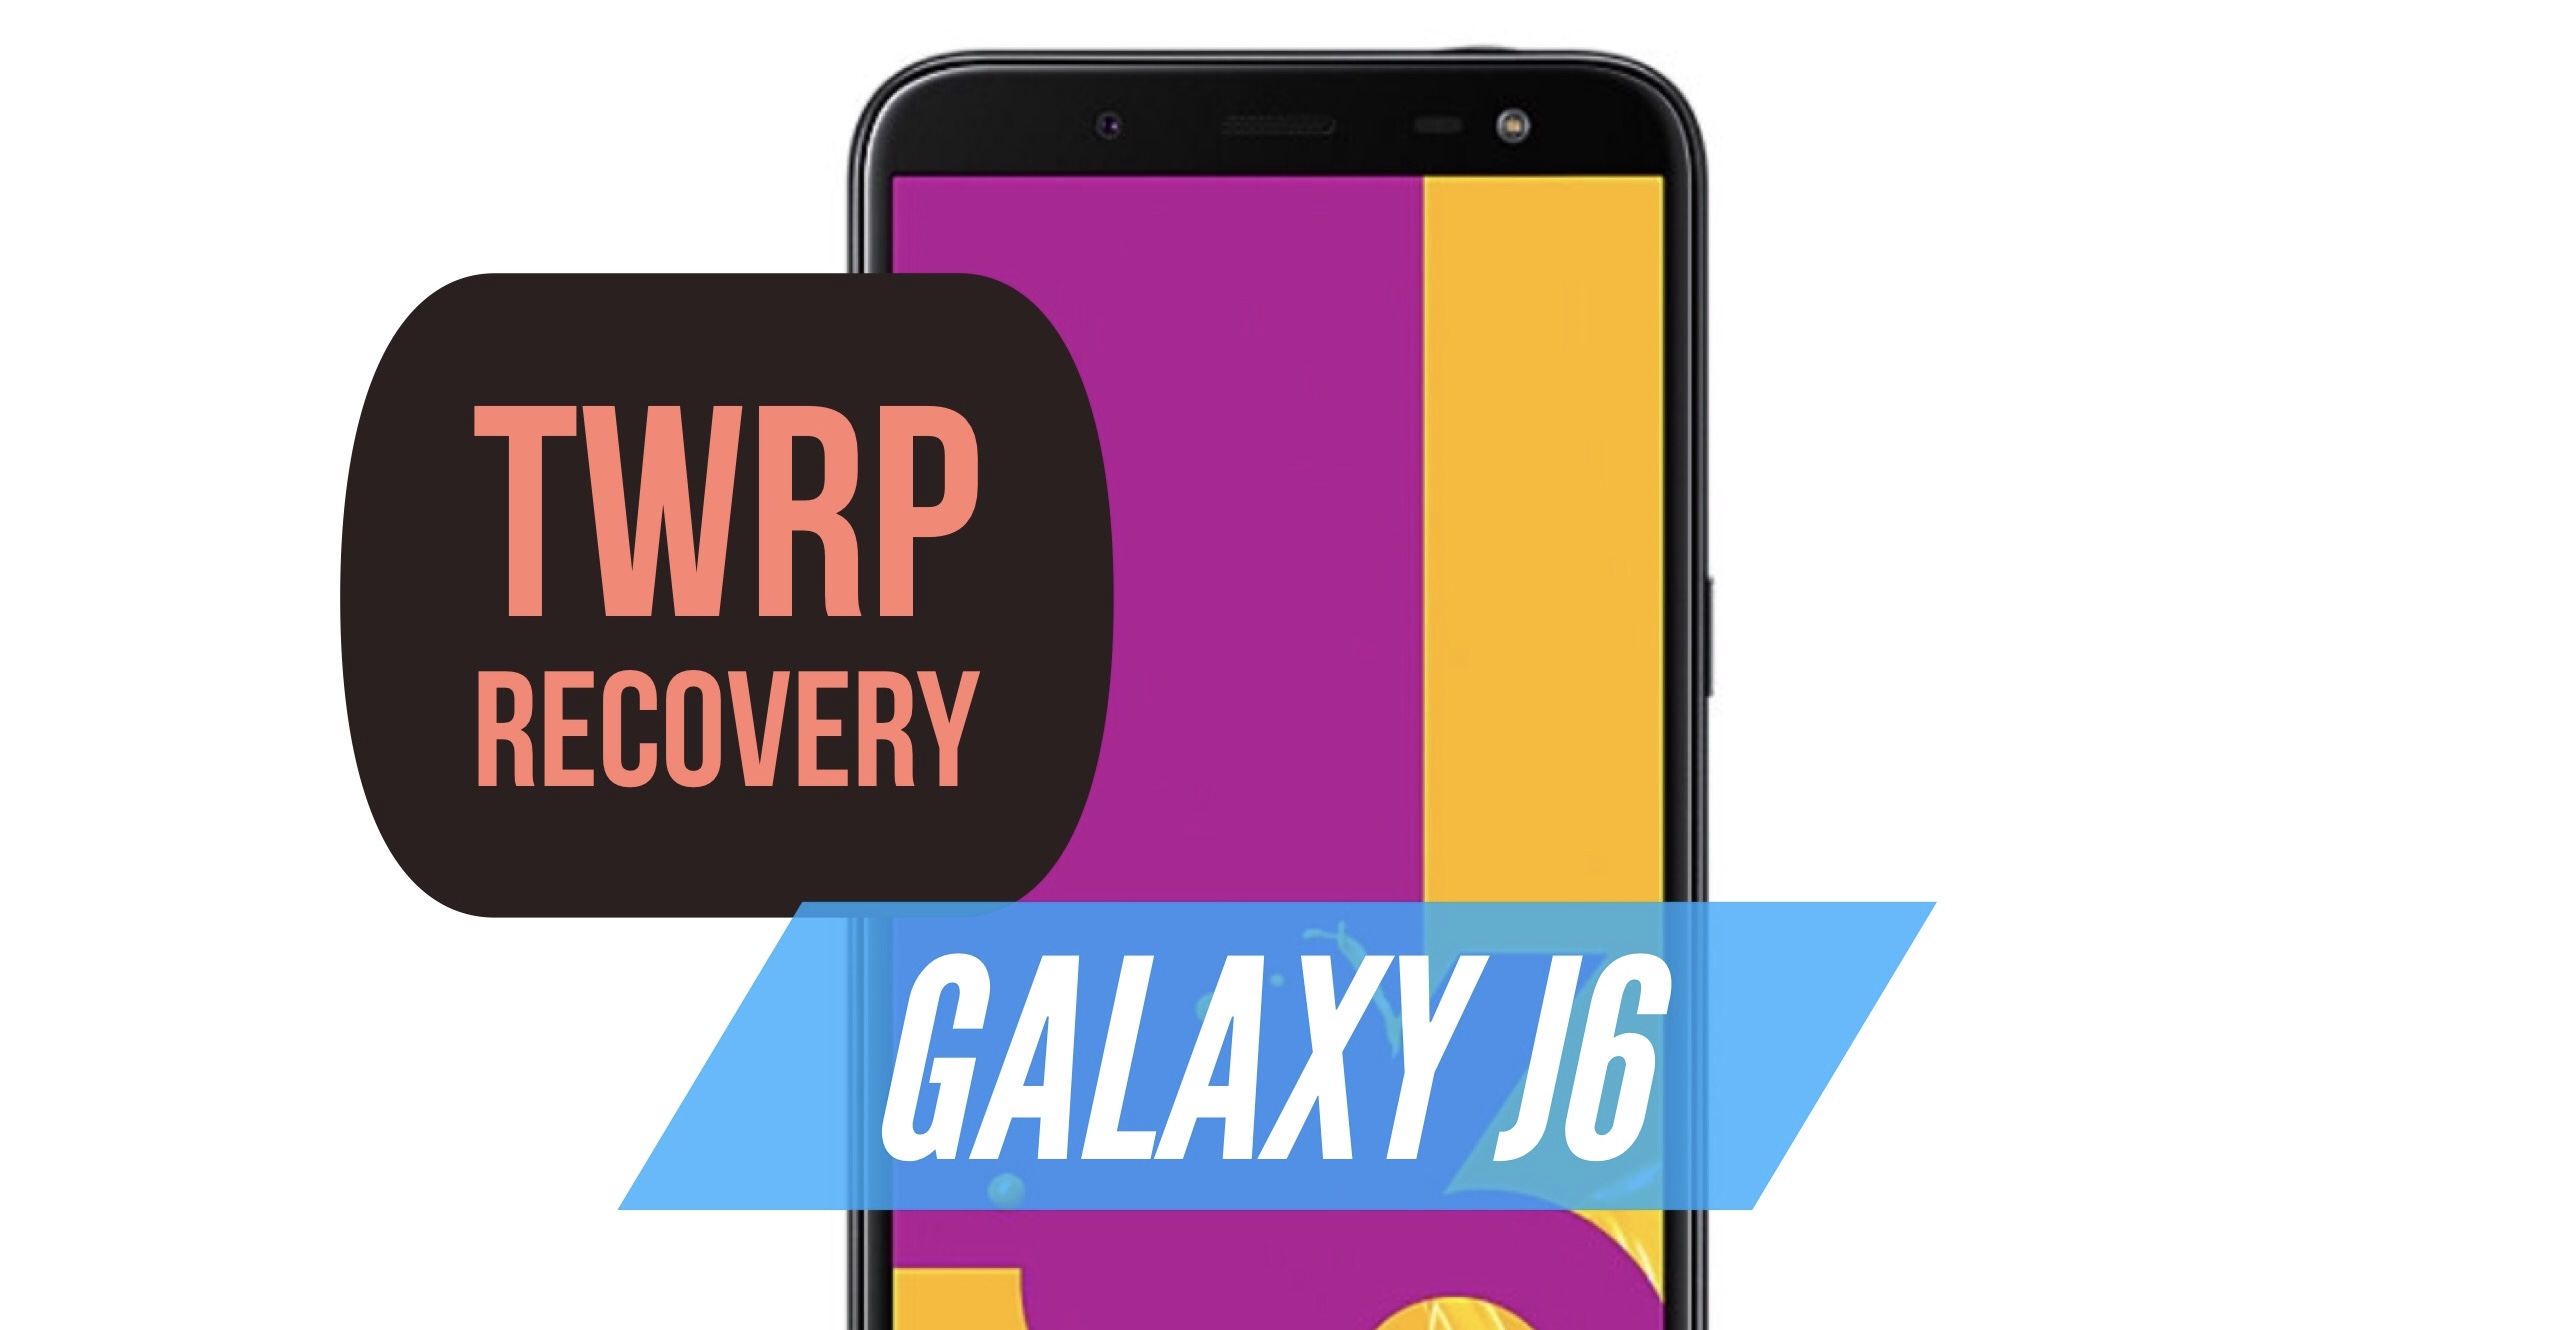 How to install TWRP Recovery on Galaxy J6? INSTRUCTIONS!